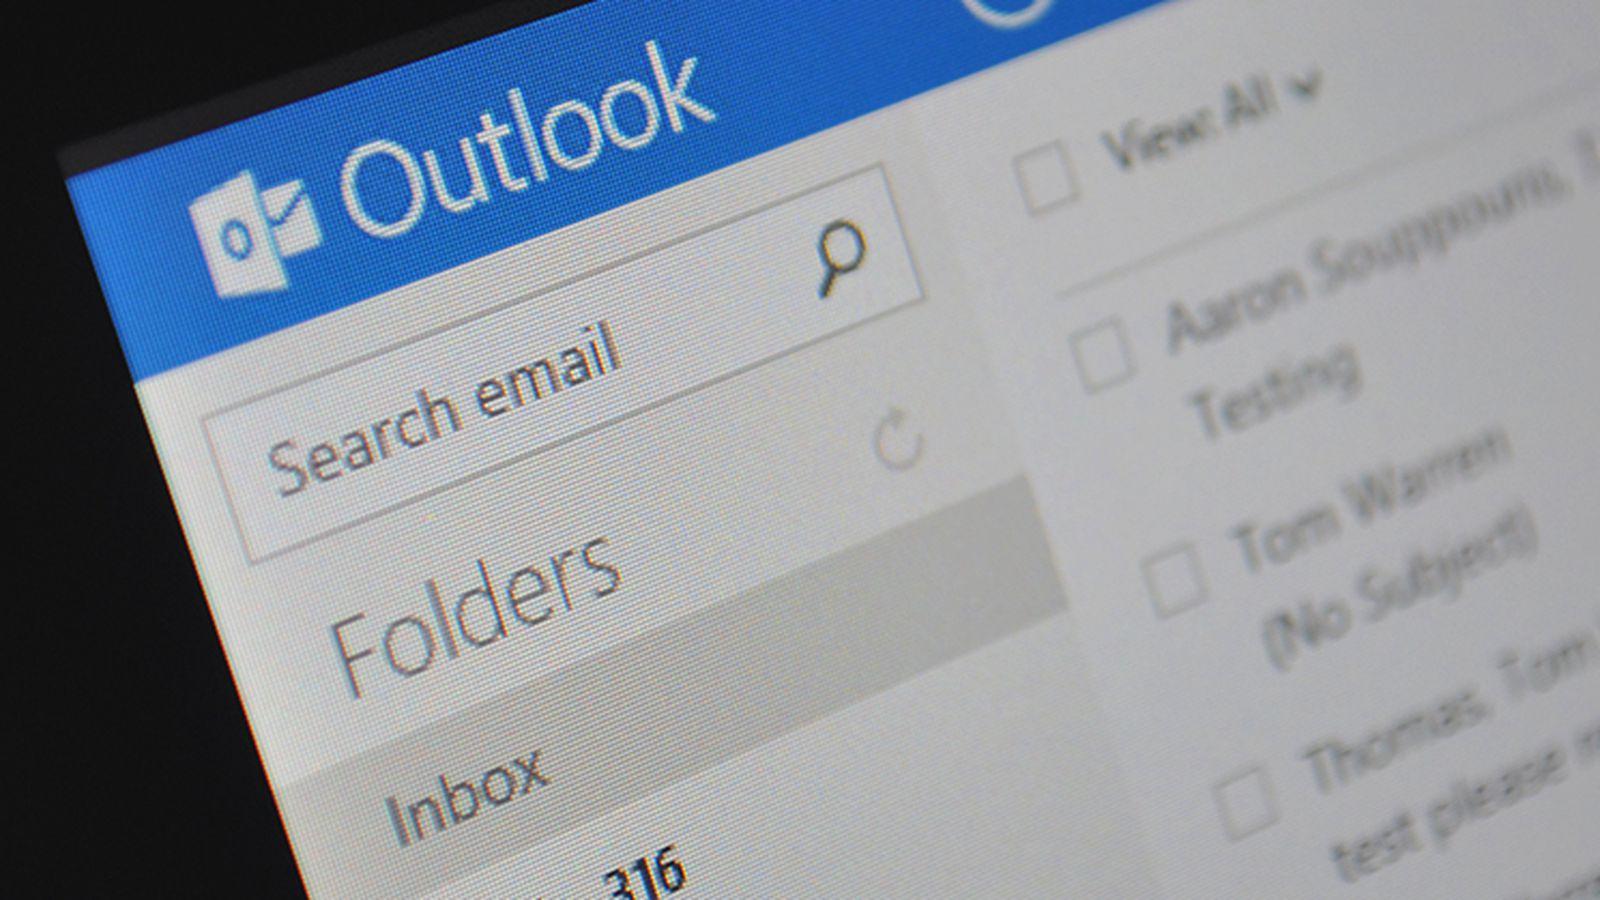 Microsoft Launches Outlook.com Premium Email Service for $19.95 Per Year